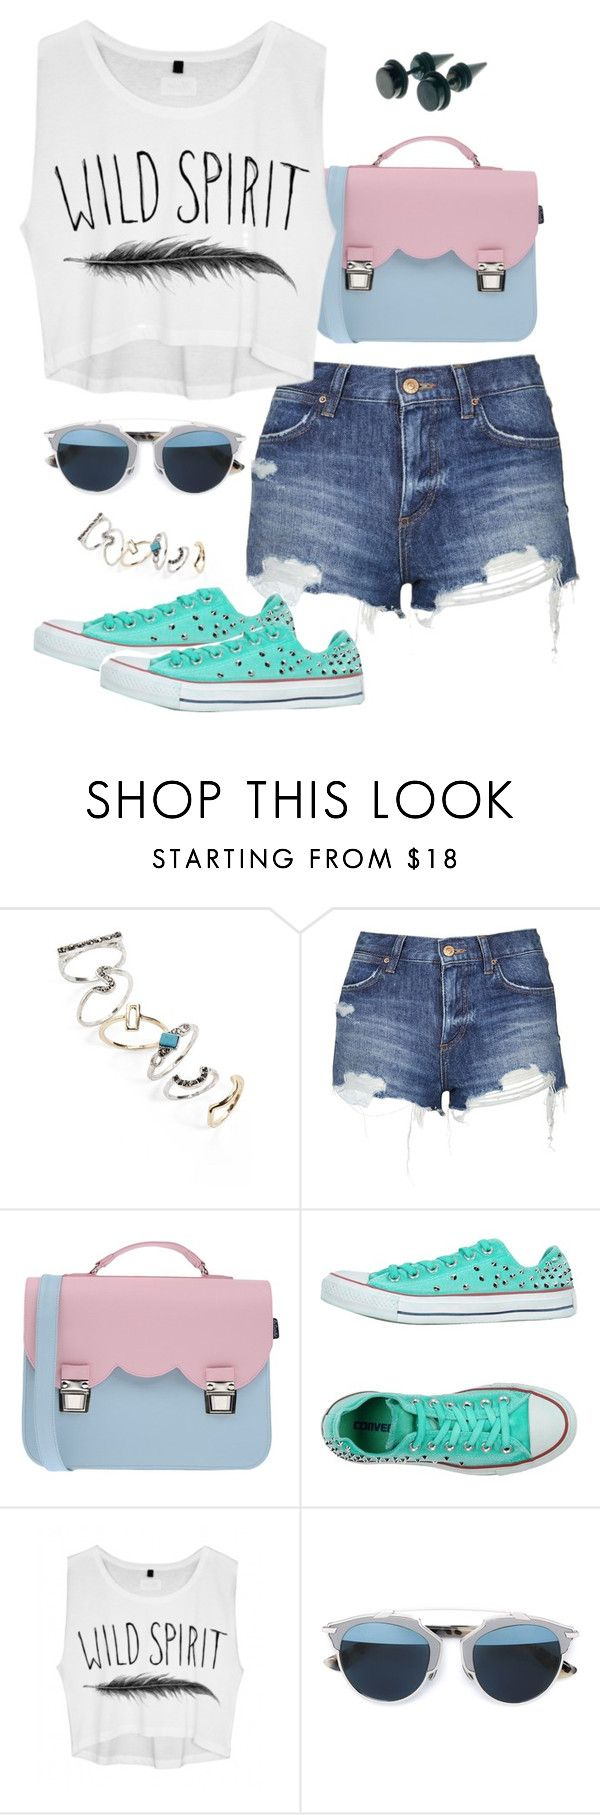 """Untitled #3346"" by meandelstyle ❤ liked on Polyvore featuring Topshop, La Cartella, Converse, Christian Dior, women's clothing, women, female, woman, misses and juniors"